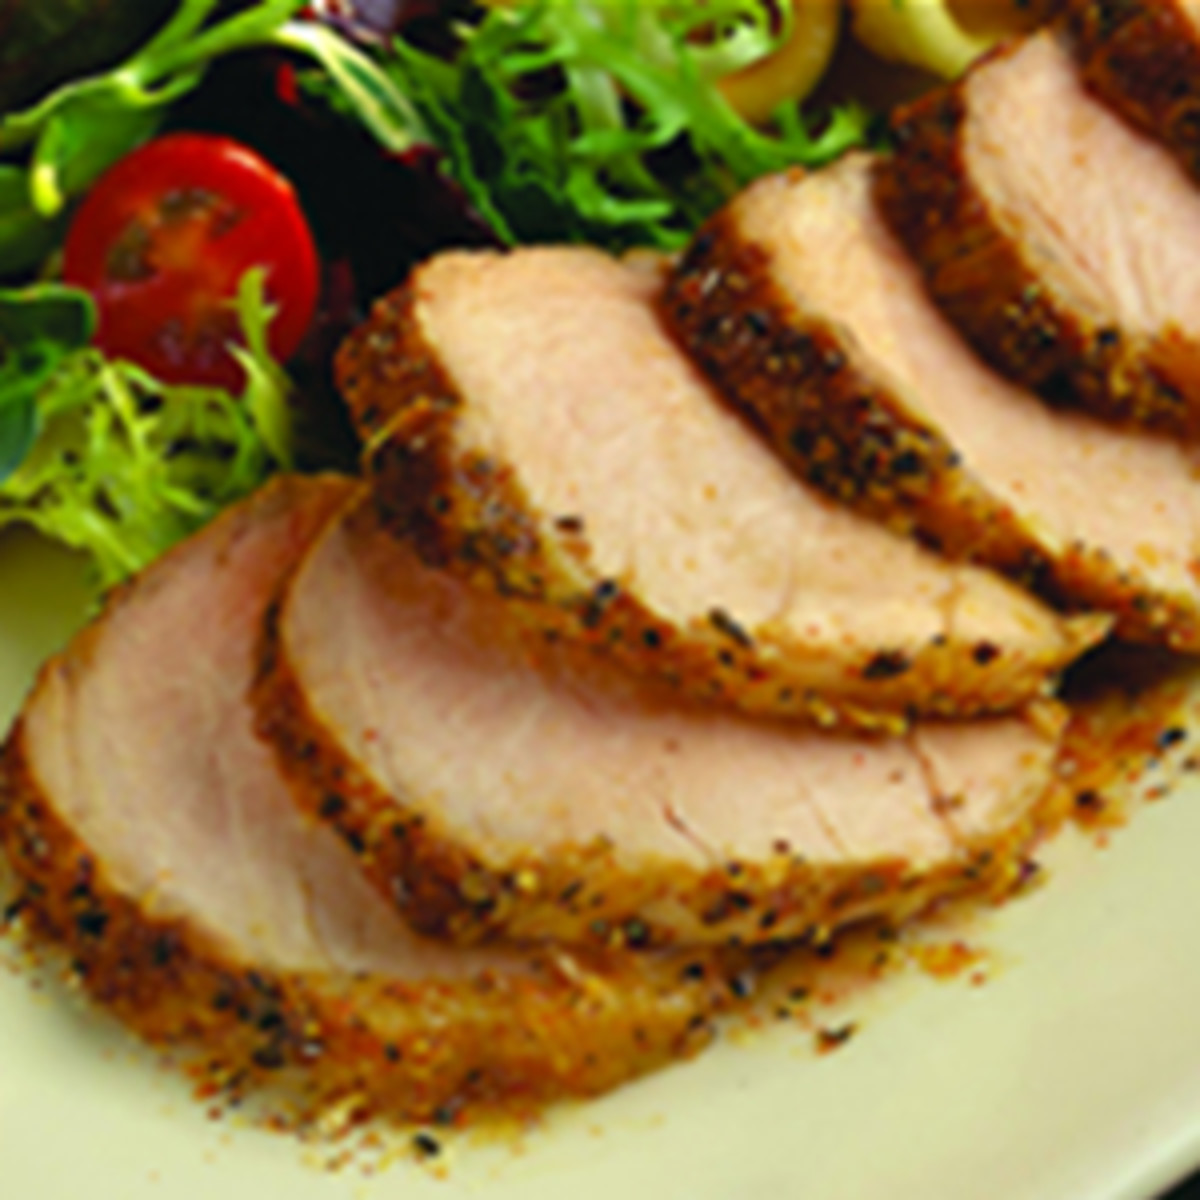 Make Perfect Pork Tenderloin in the Oven With My Pork Tenderloin Recipe